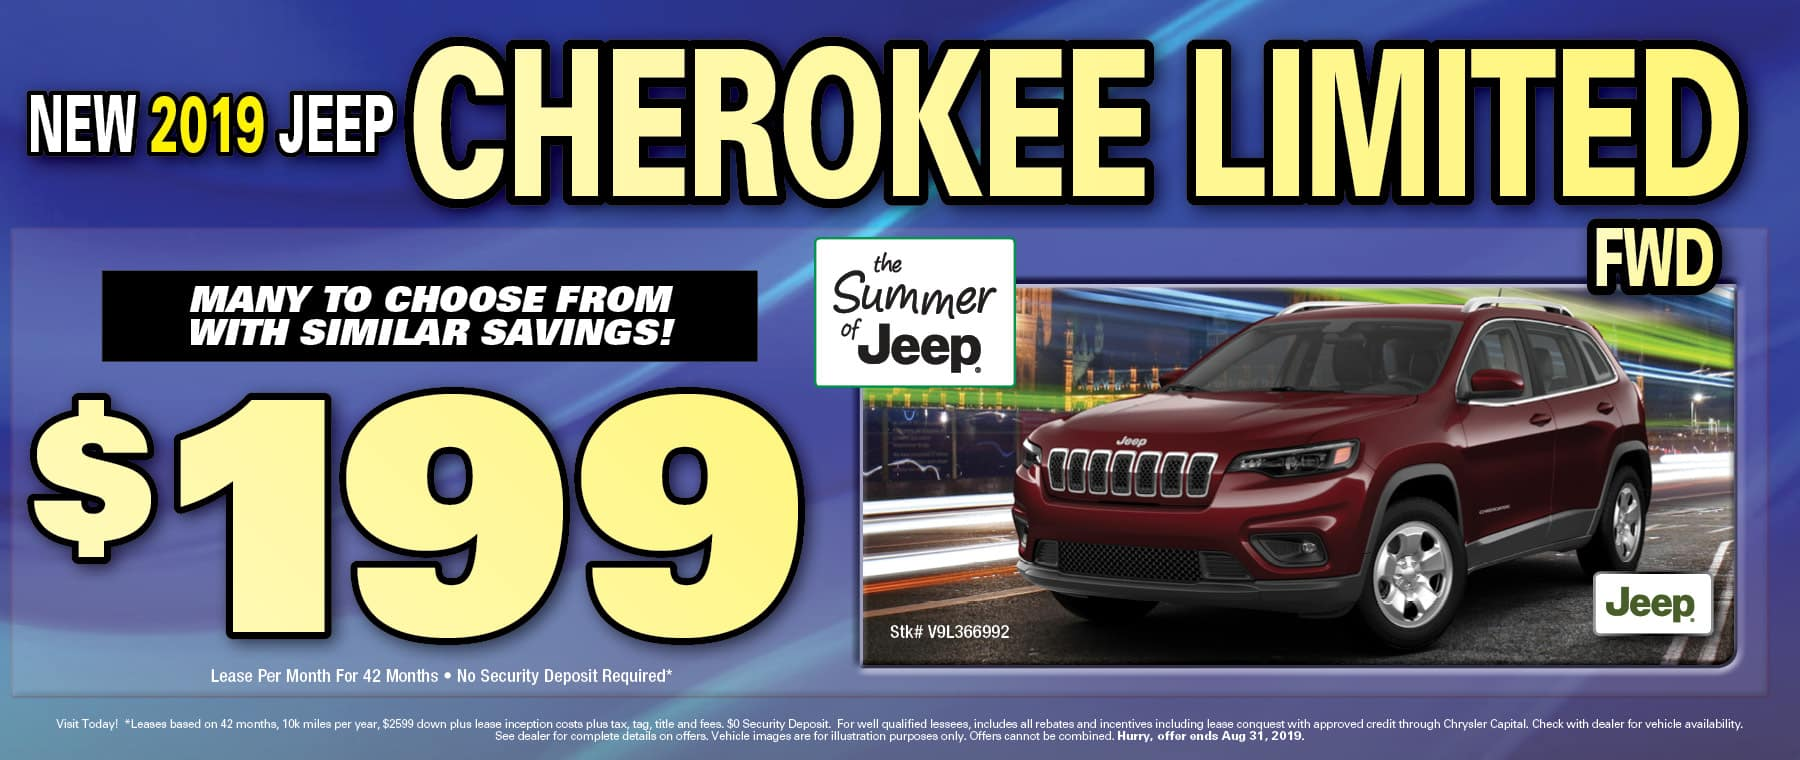 New 2019 Jeep Cherokees!